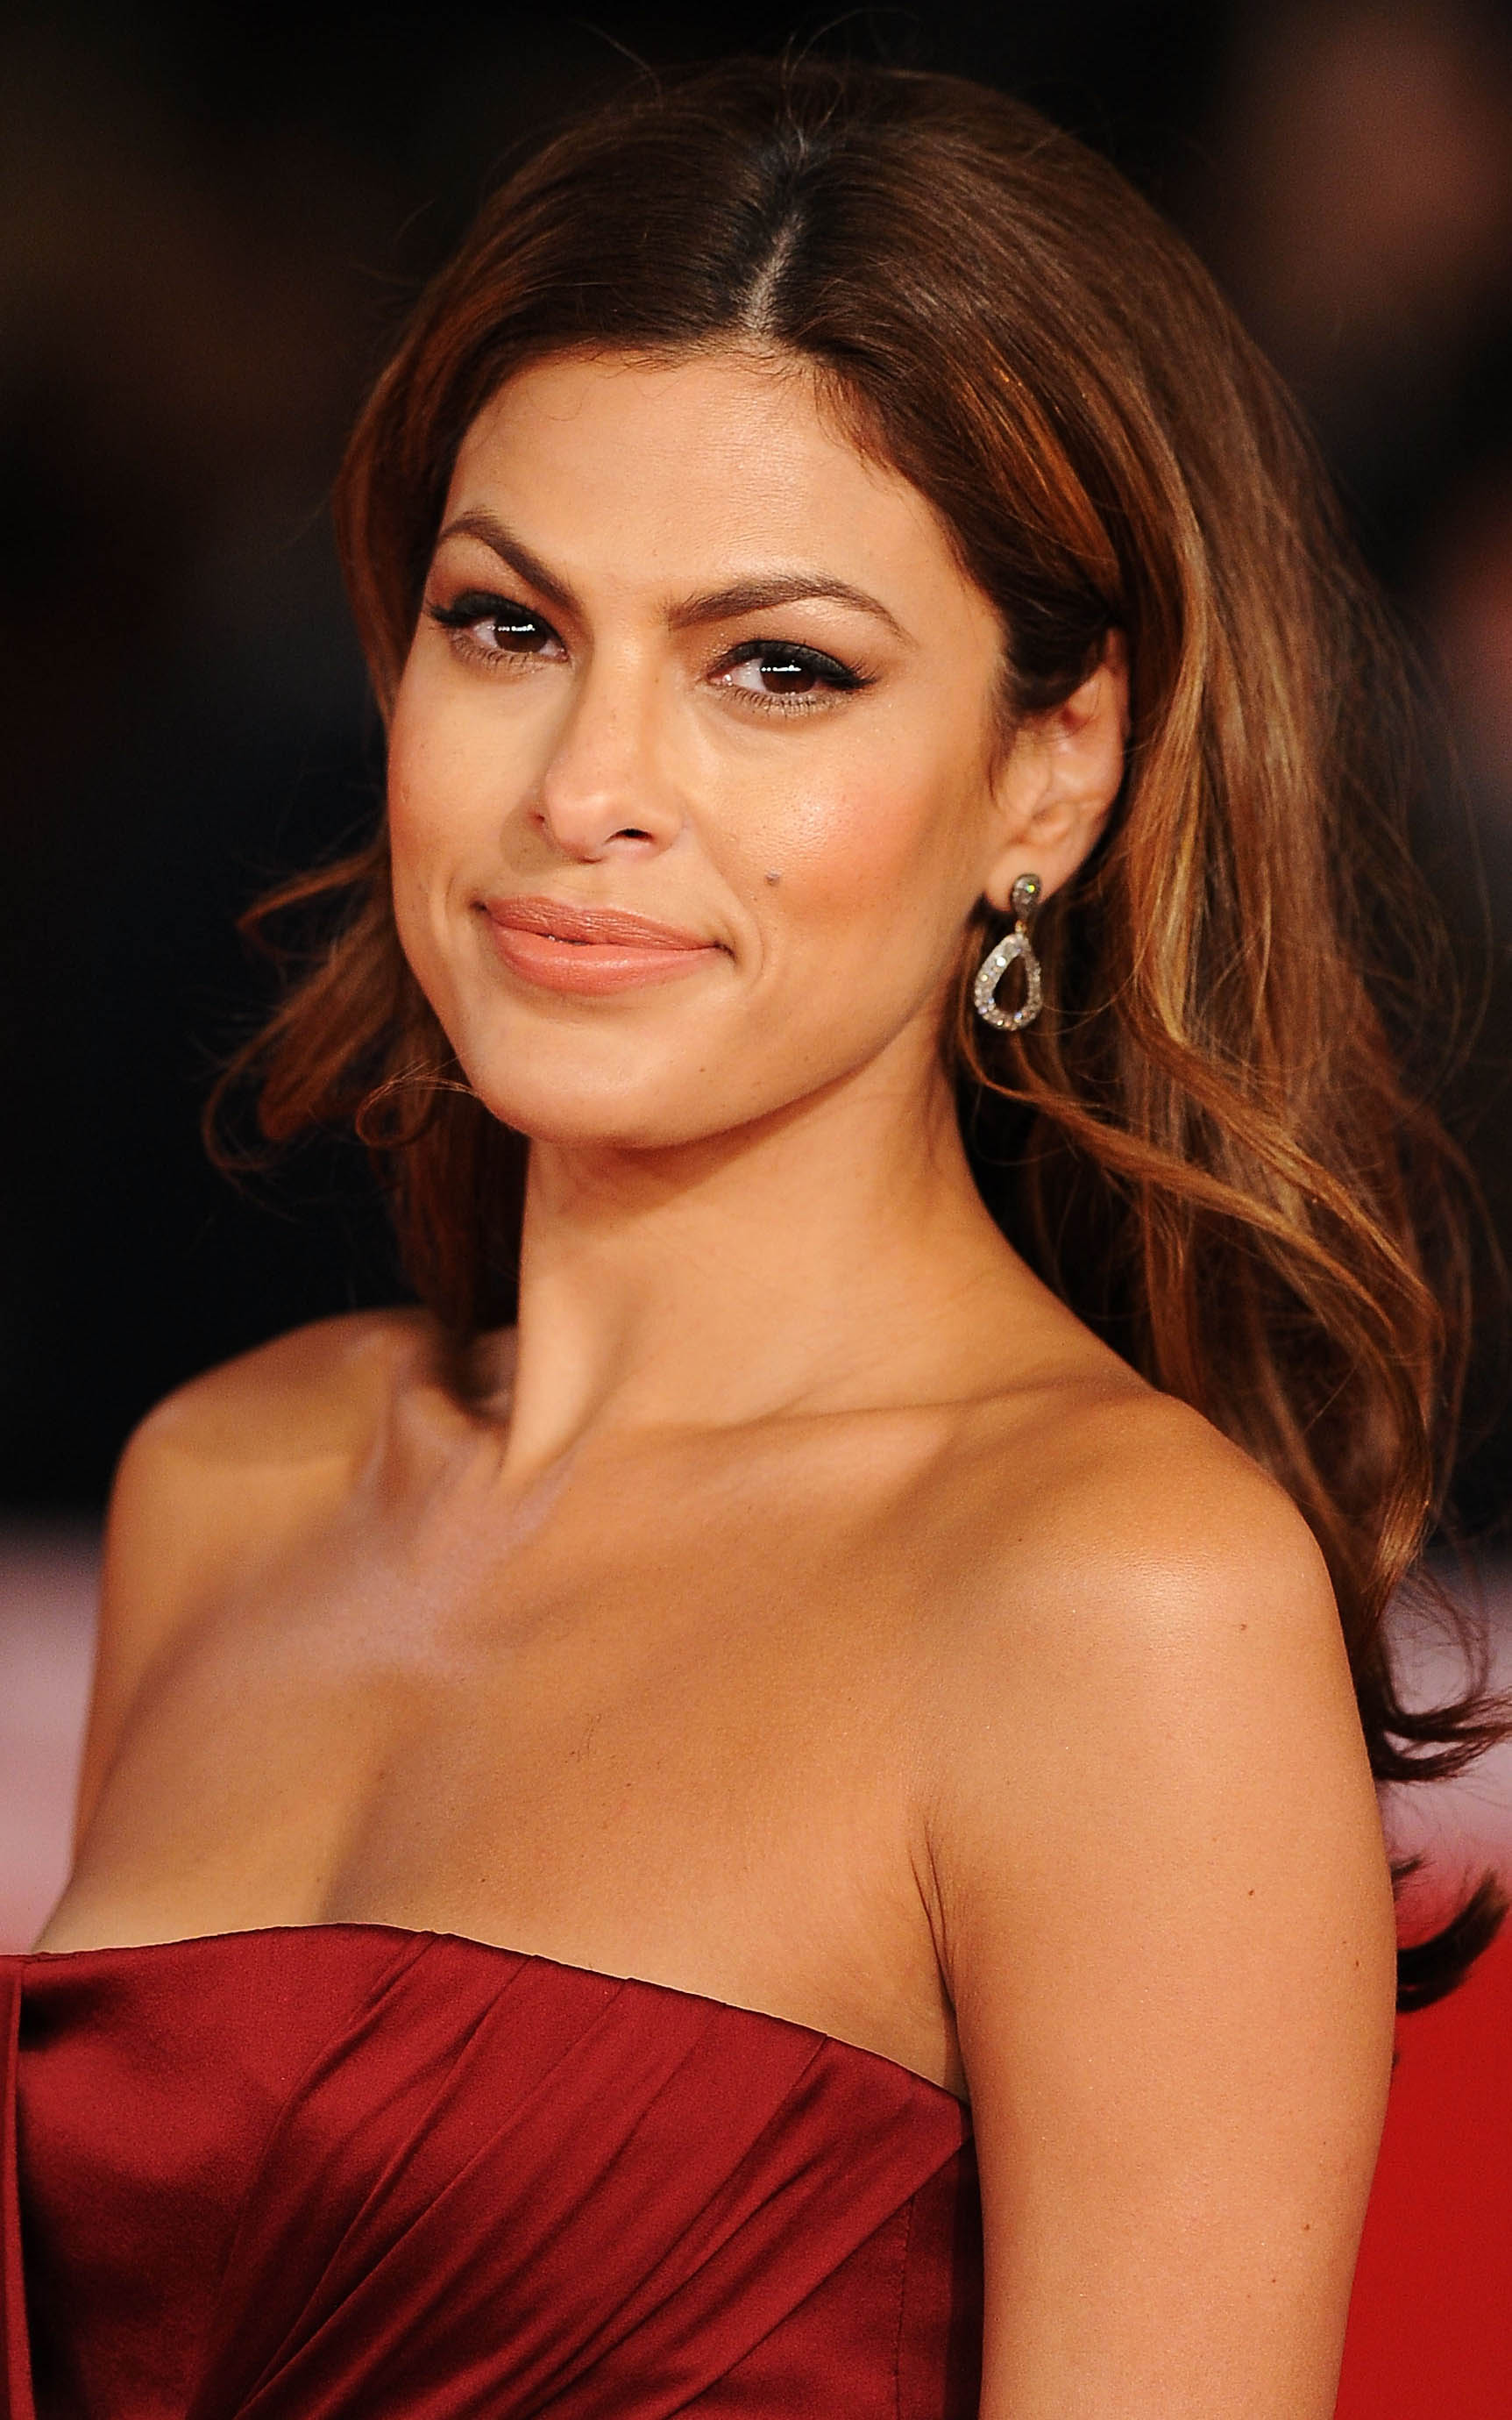 what-to-wear-oblong-face-shape-style-haircut-sunglasses-hat-earrings-jewelry-evamendes-strapless-dress.jpeg